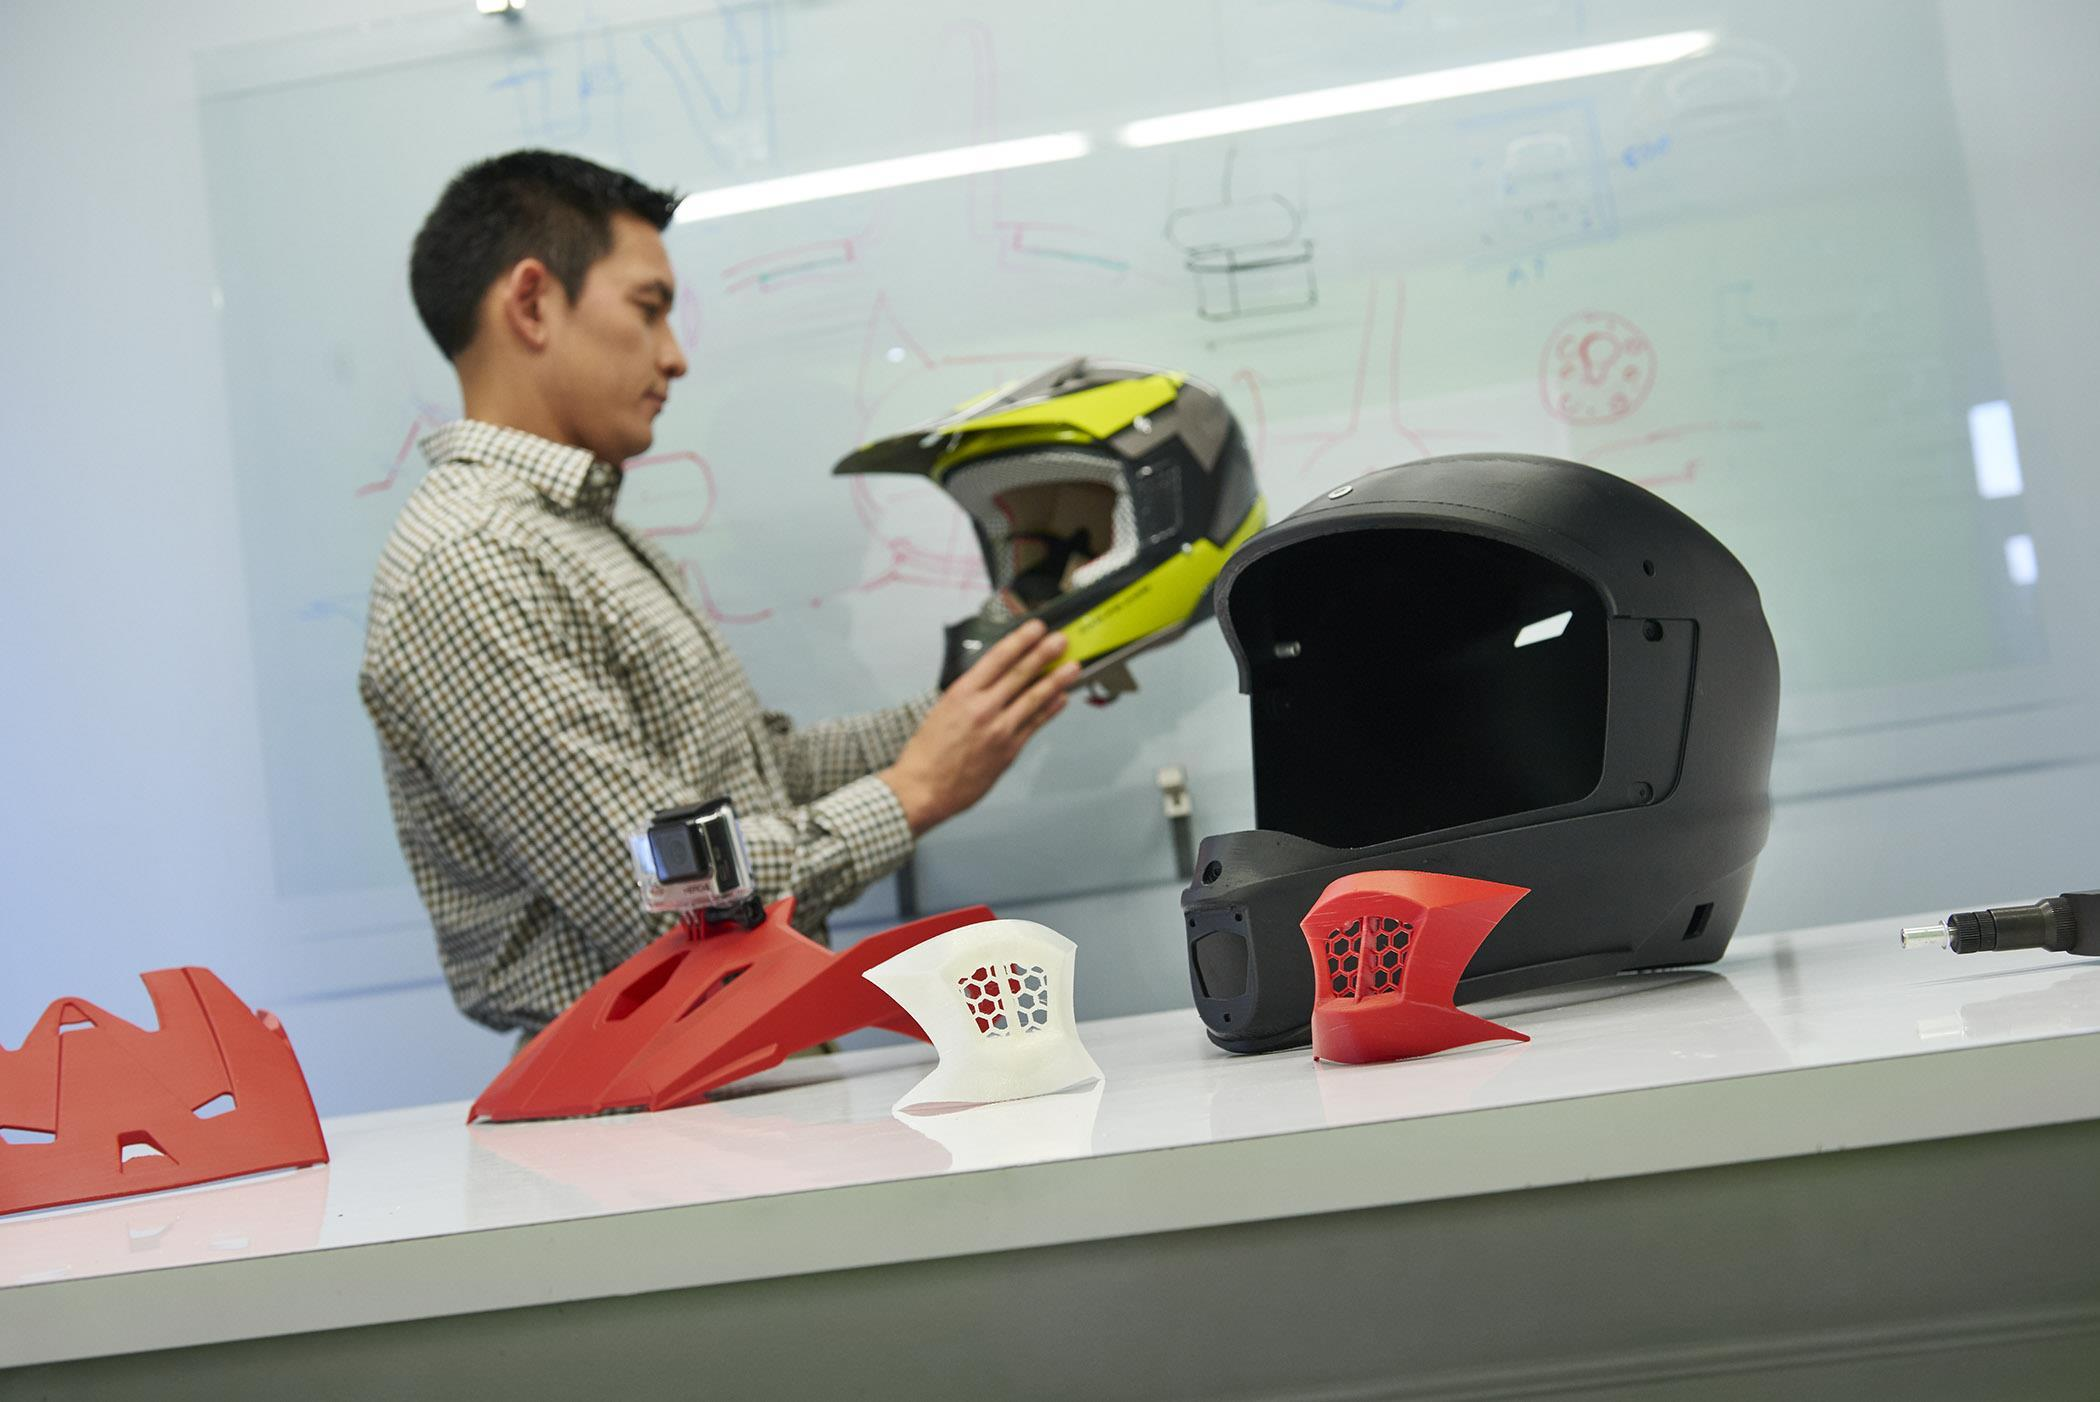 Motorcycle helmet prototypes produced on the Stratasys F370 3D Printer at the Center for Advanced Design being tested for design validation. (Photo: Business Wire)